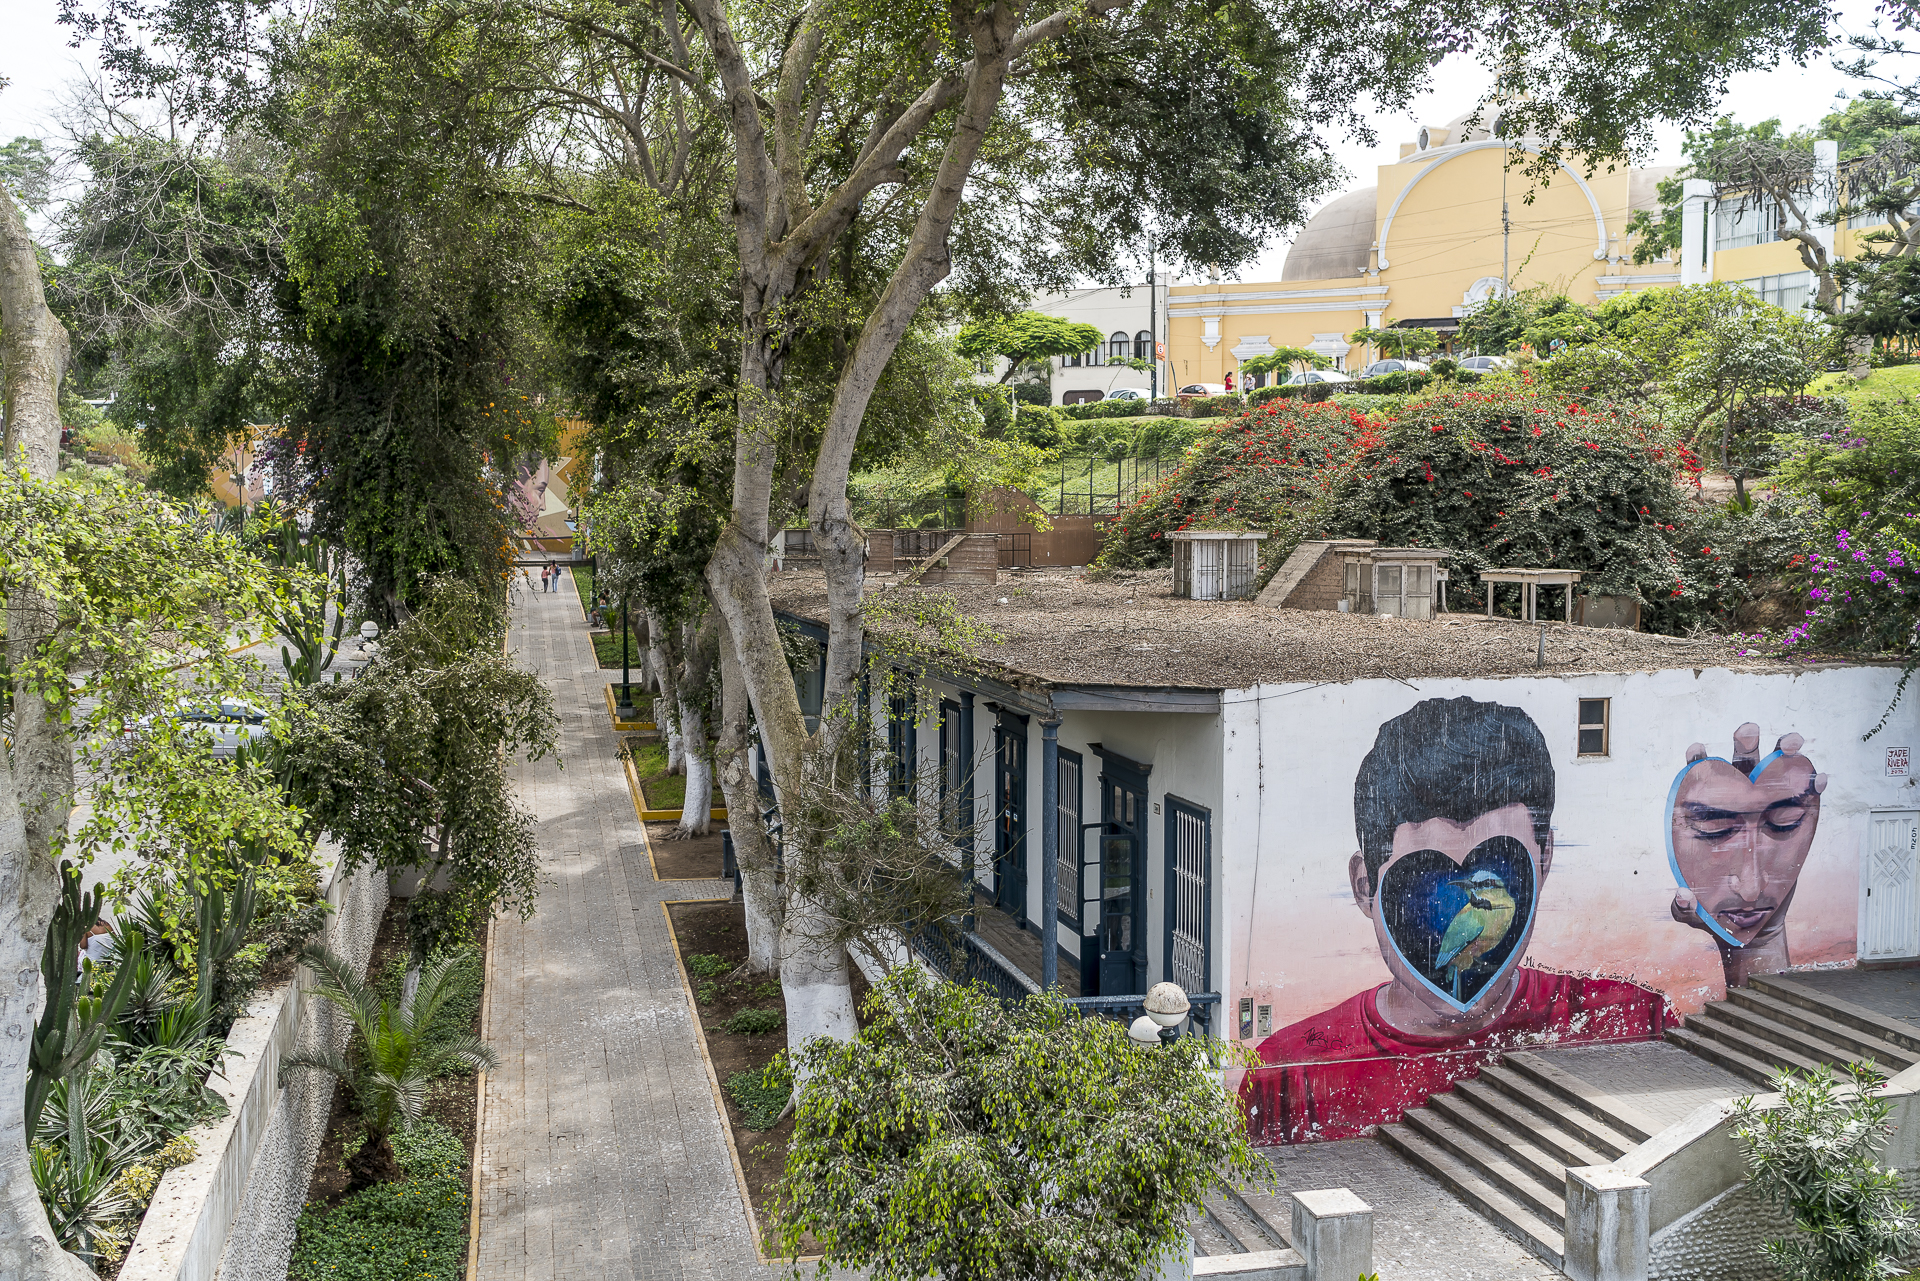 Lima Barranco Street Art